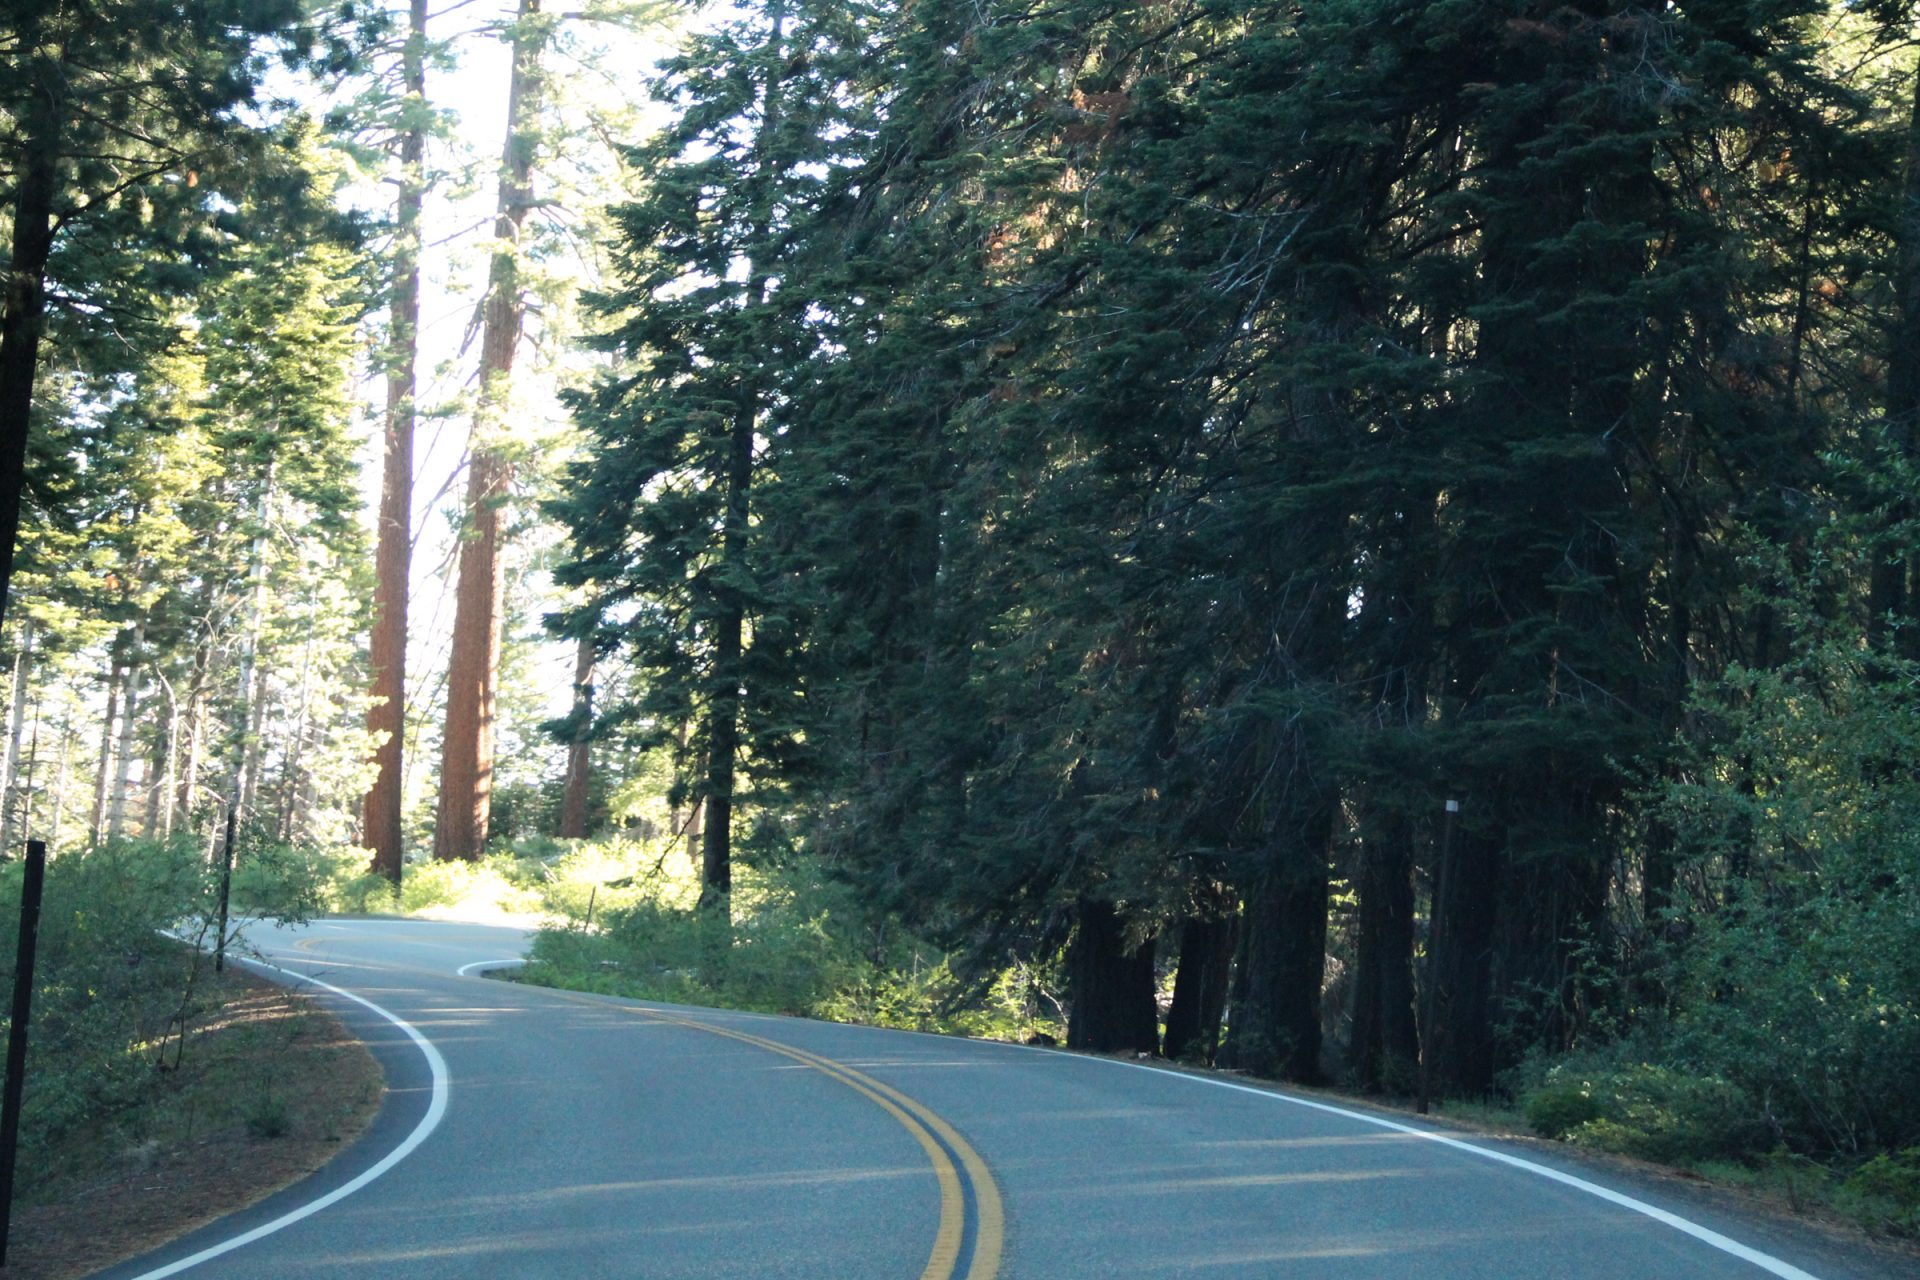 Winding Road Through Trees in Forest